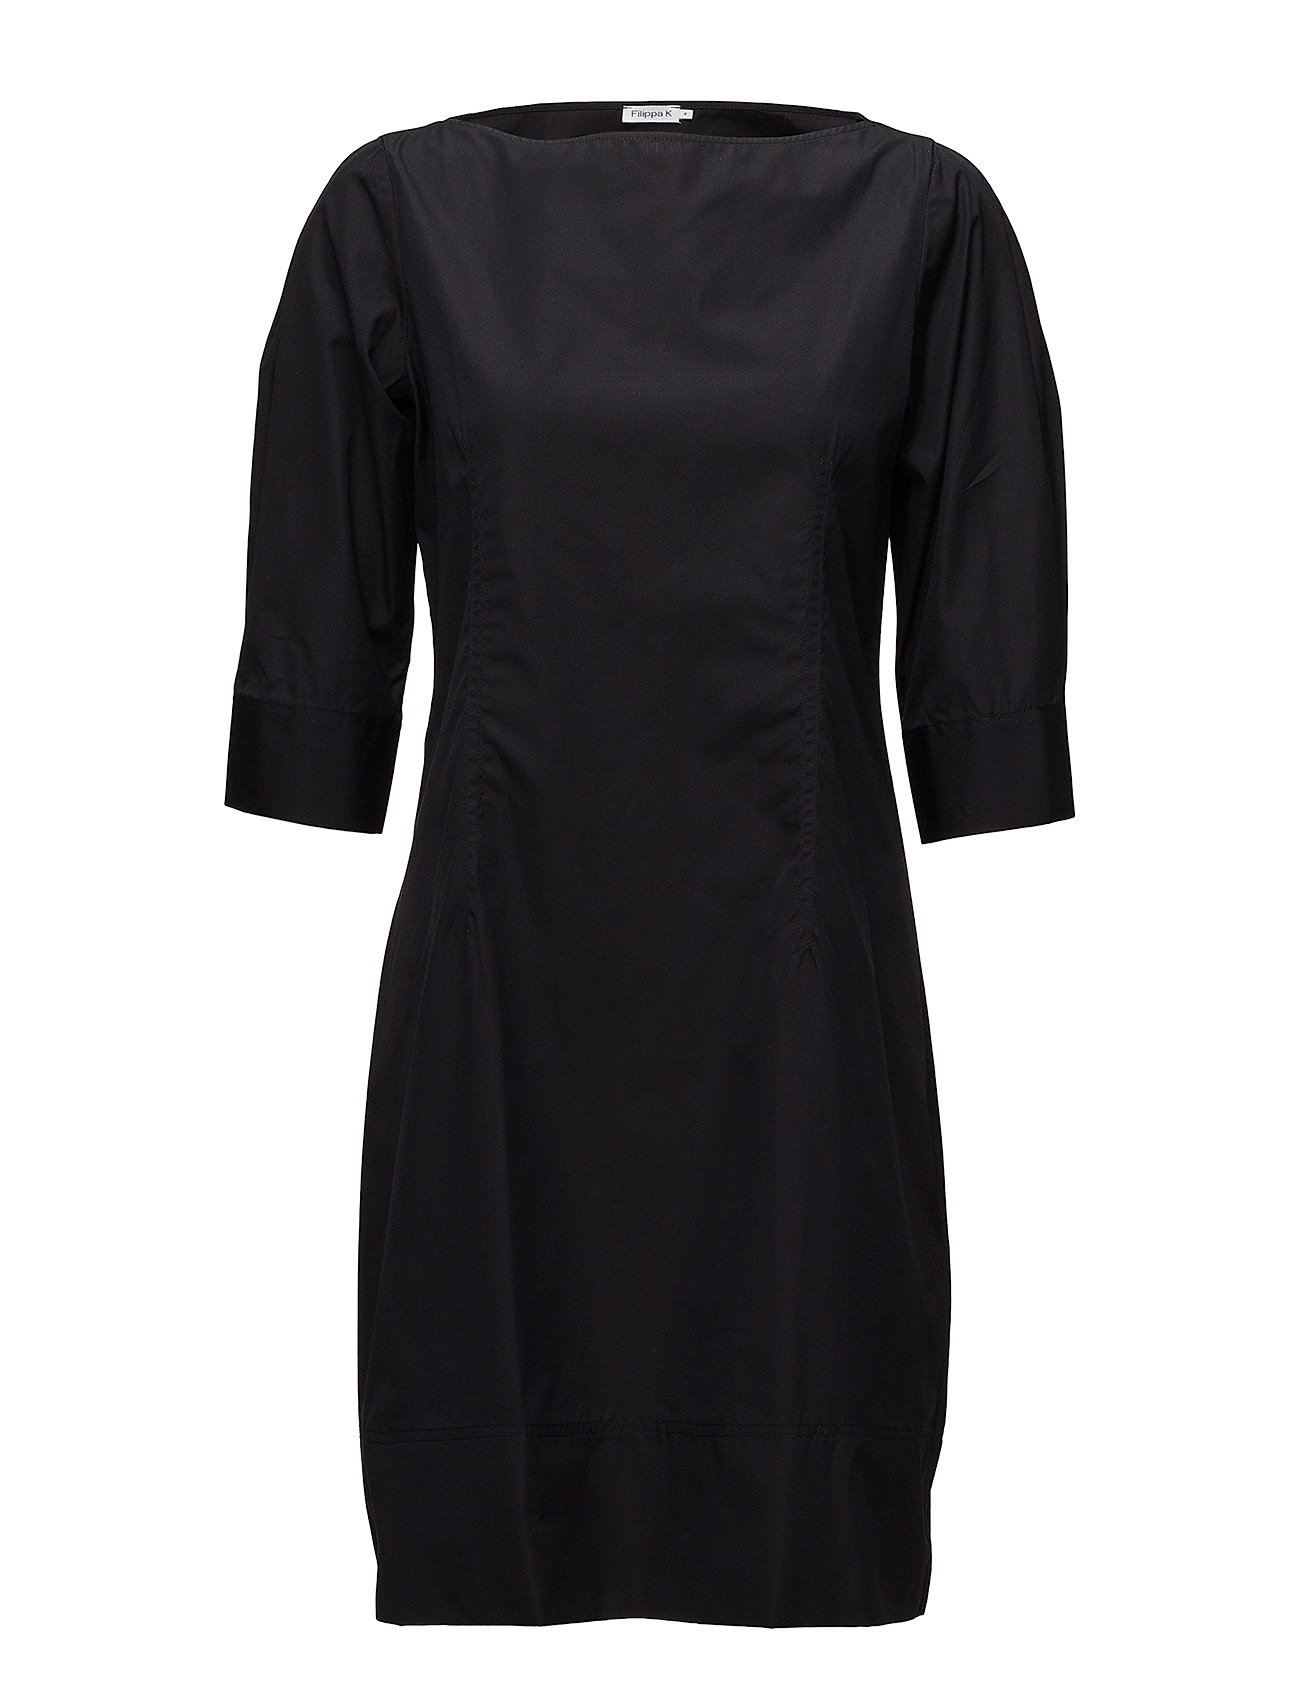 6302a28b6223 Poplin Dress (Black) (770 kr) - Filippa K -